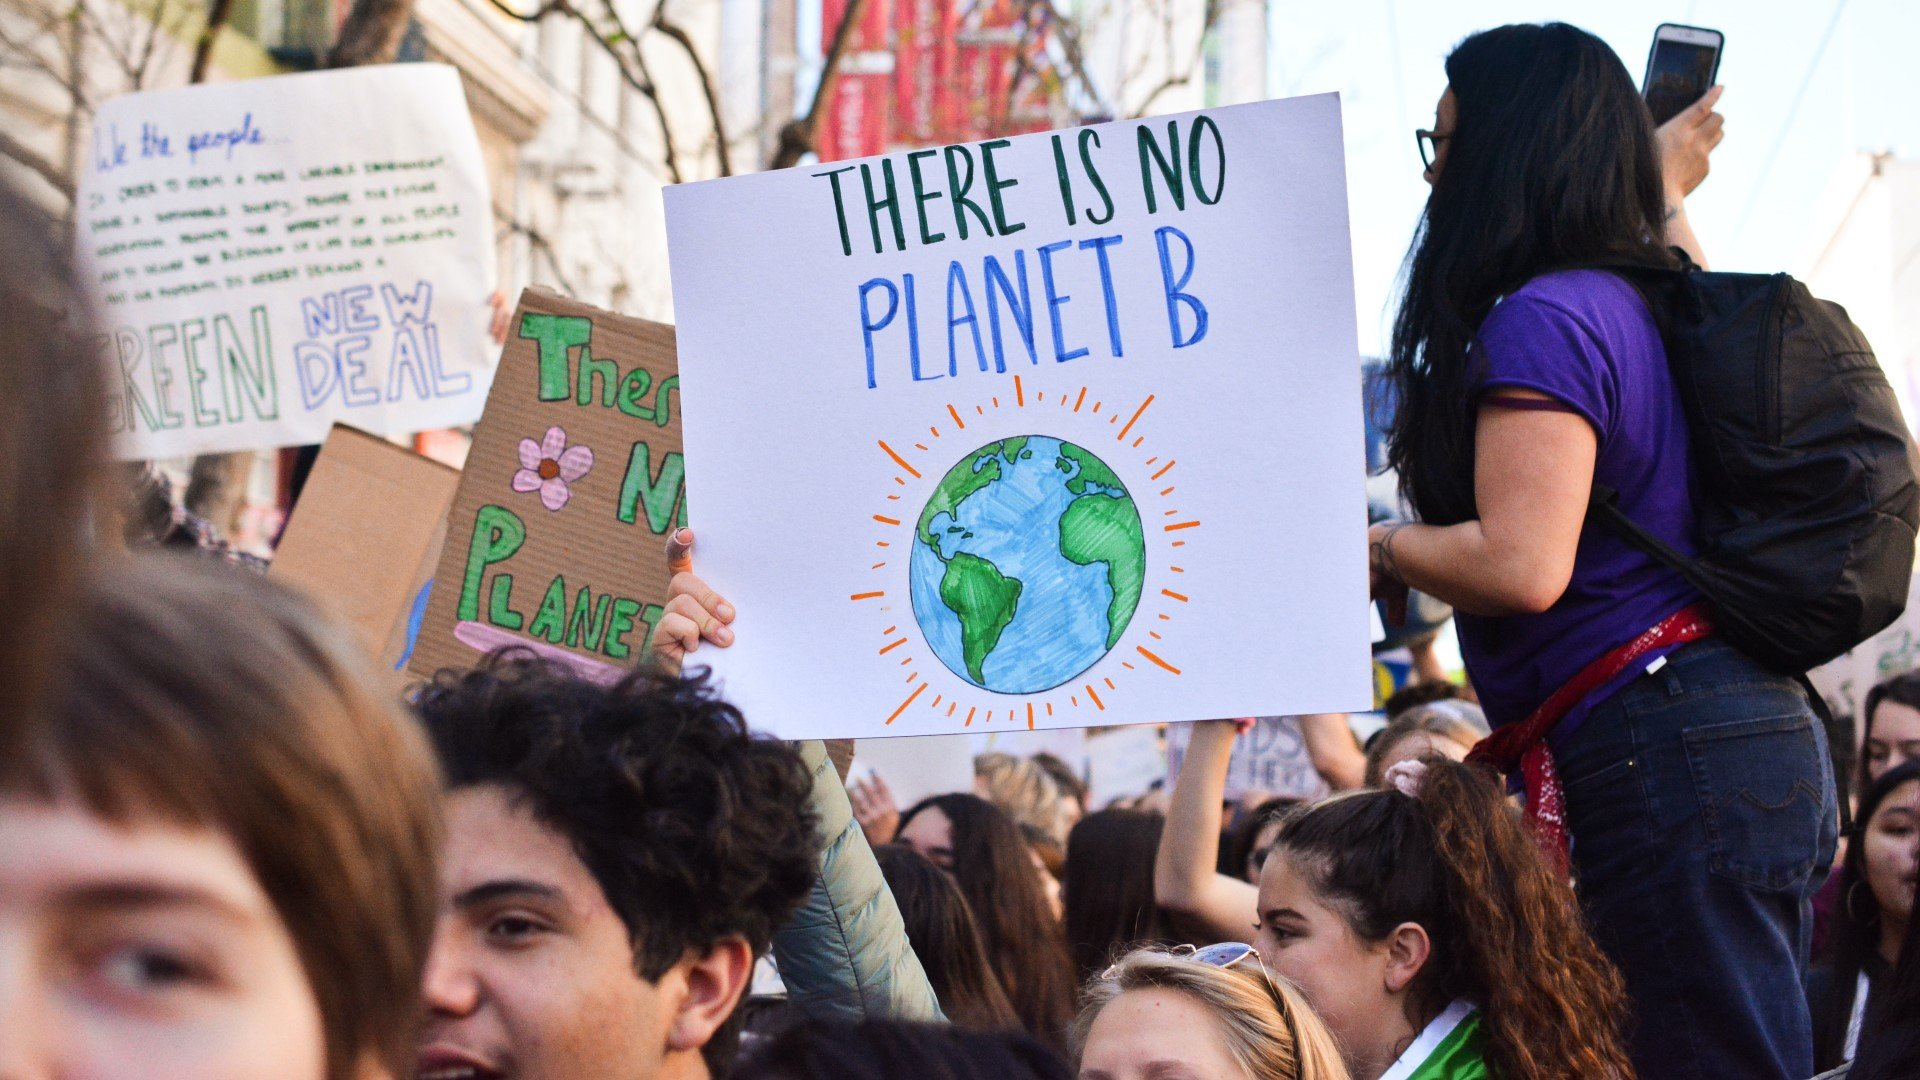 Oxford City Council to hold Youth Climate Summit on how city can tackle the climate emergency. Image: Scene from a youth climate change protest.